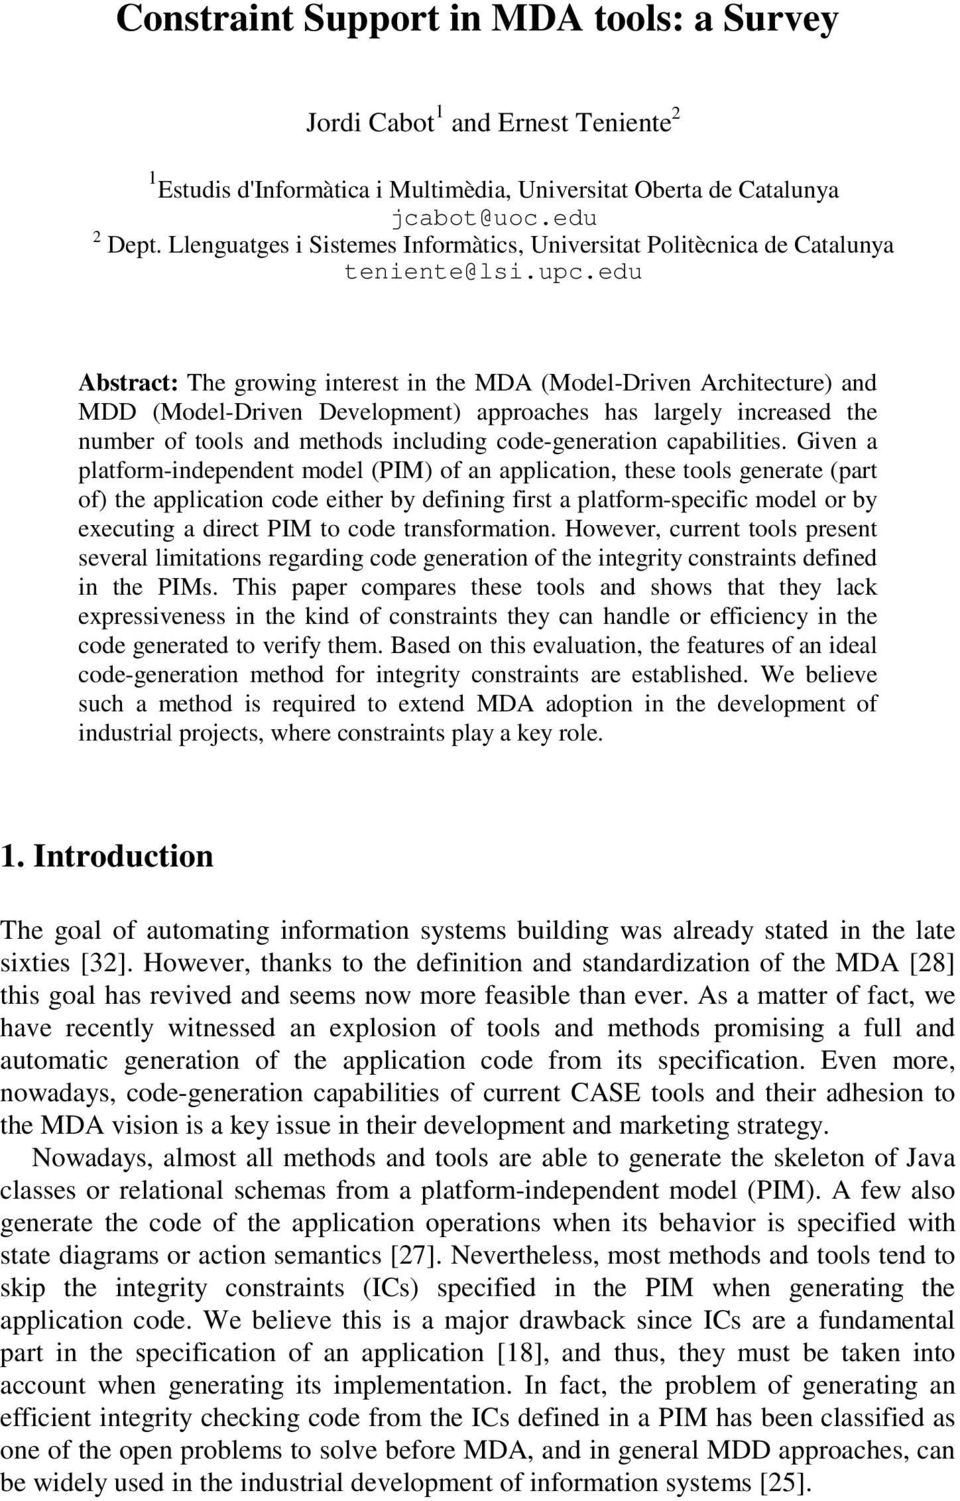 edu Abstract: The growing interest in the MDA (Model-Driven Architecture) and MDD (Model-Driven Development) approaches has largely increased the number of tools and methods including code-generation